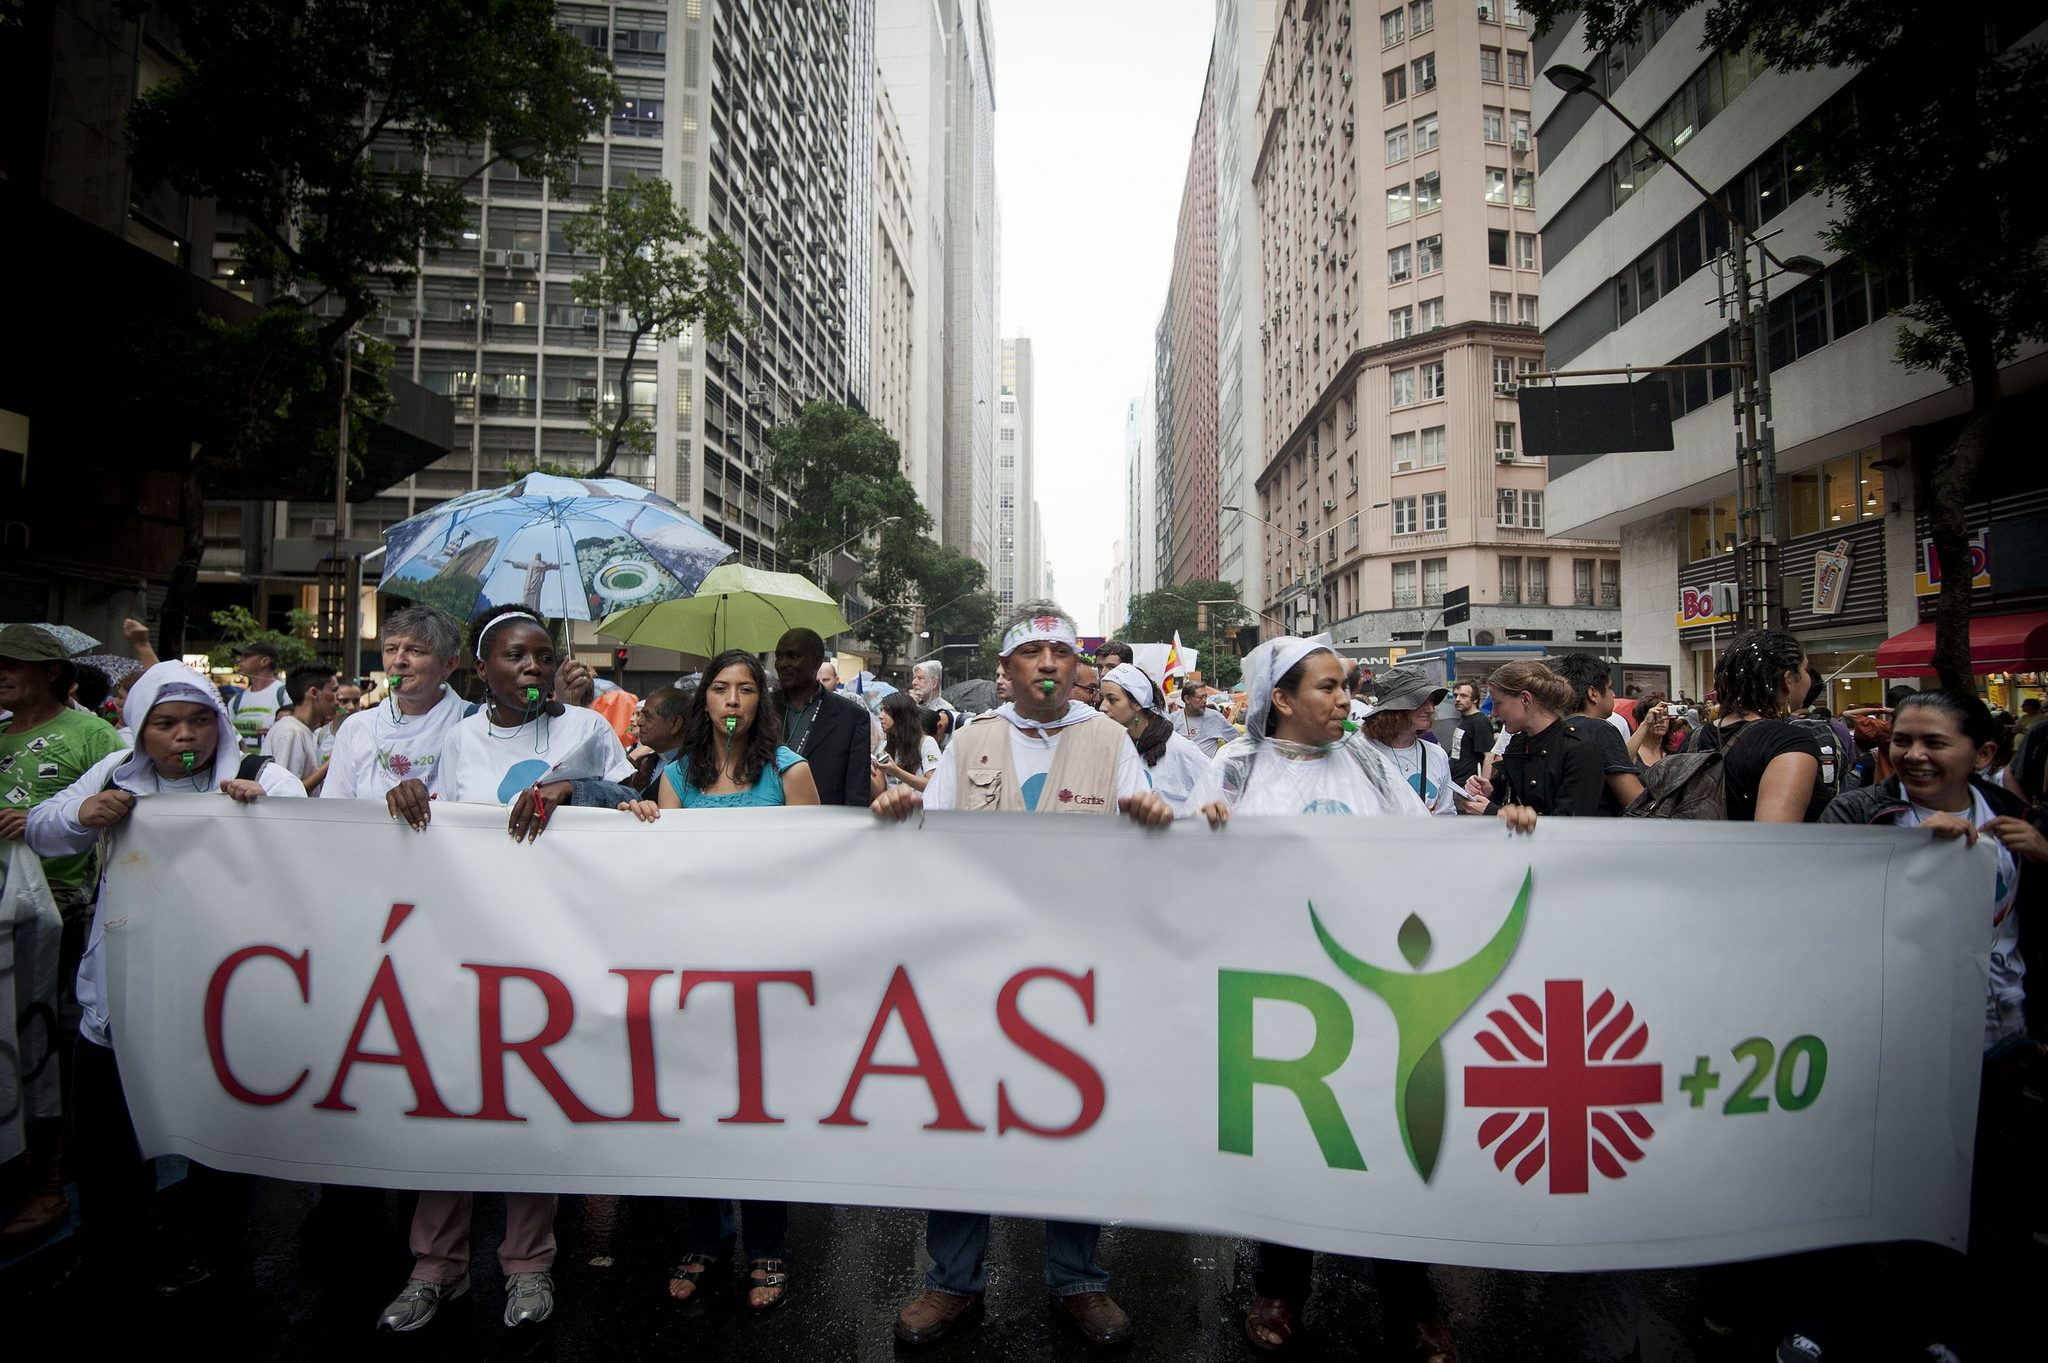 Climate change in Brazil and the response of Caritas and REPAM*